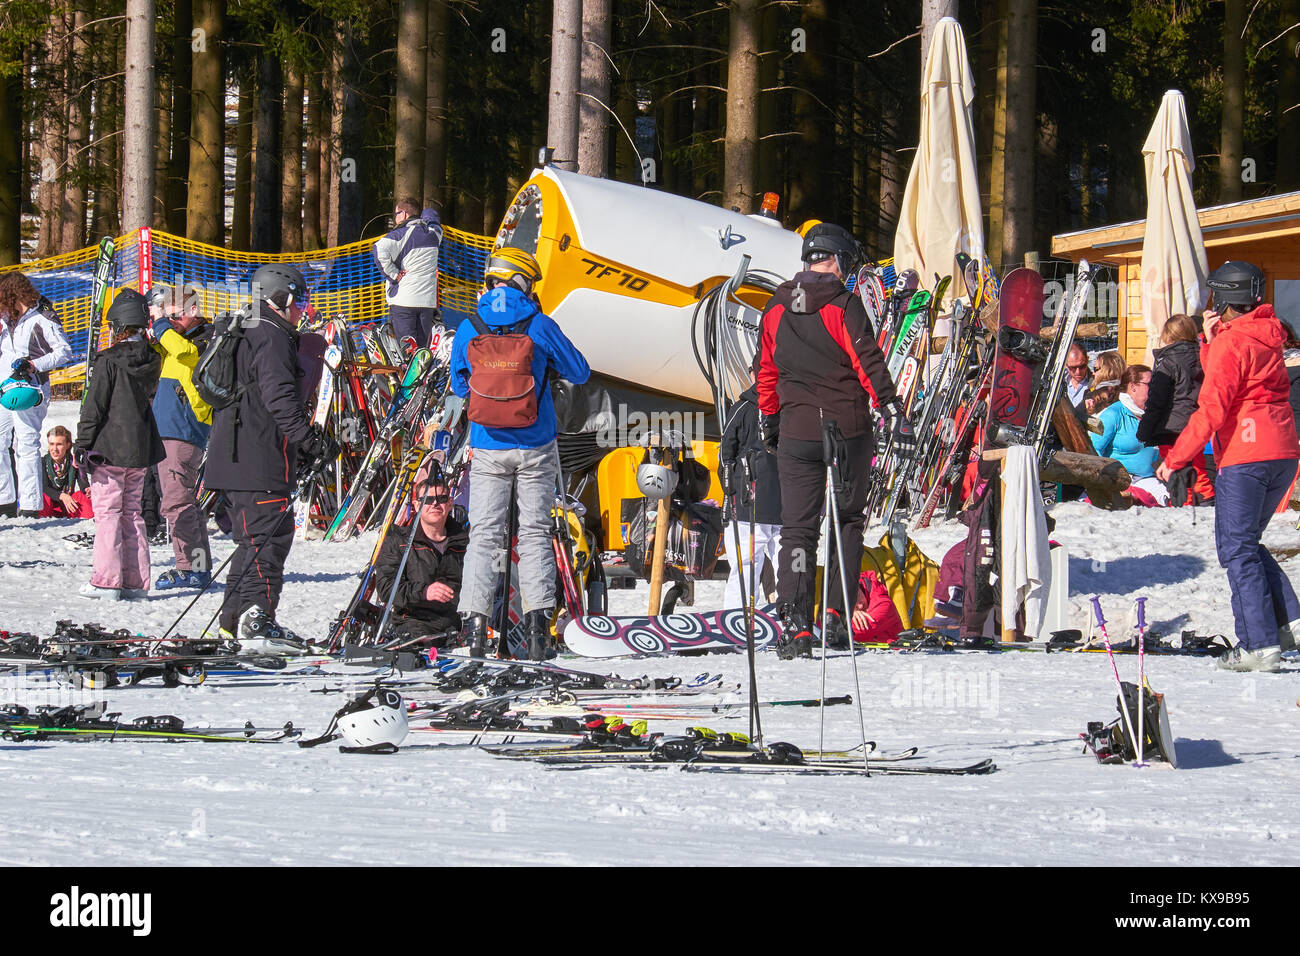 WINTERBERG, GERMANY - FEBRUARY 15, 2017: Skiers taking a break at noon in the sun at Ski Carousel Winterberg - Stock Image